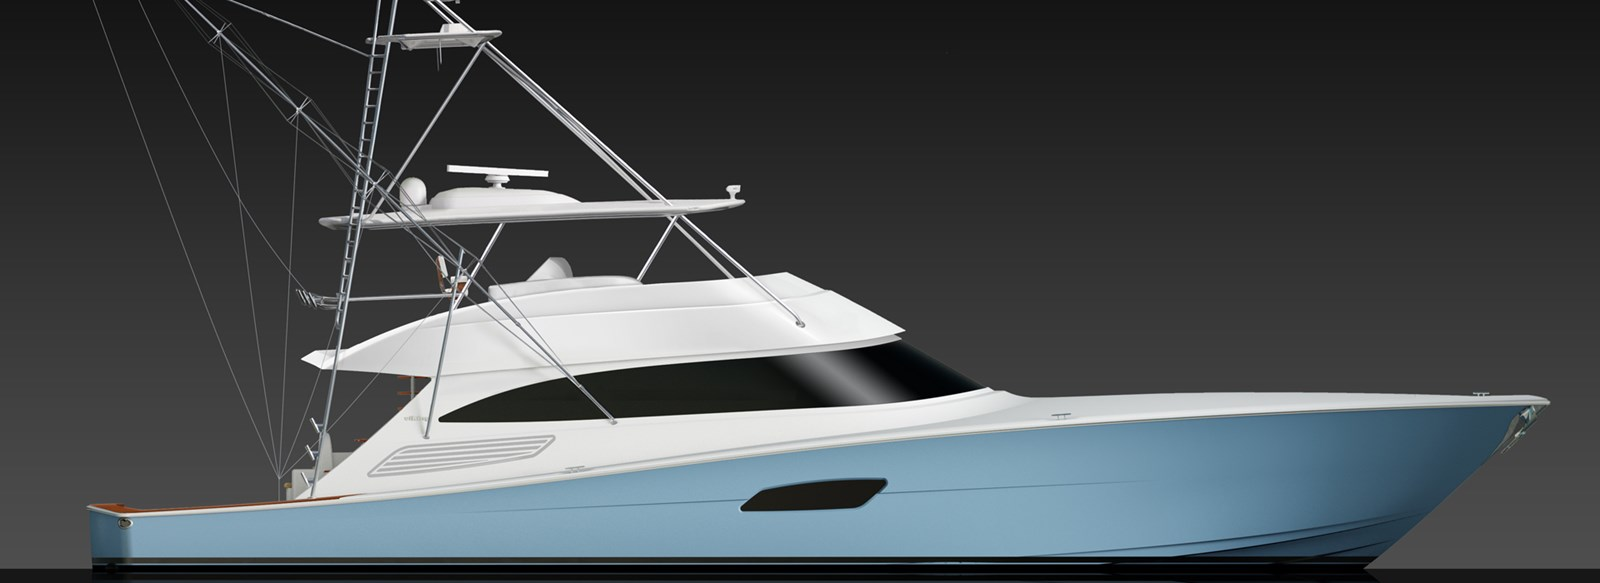 New Viking 92 Convertible Yachts For Sale